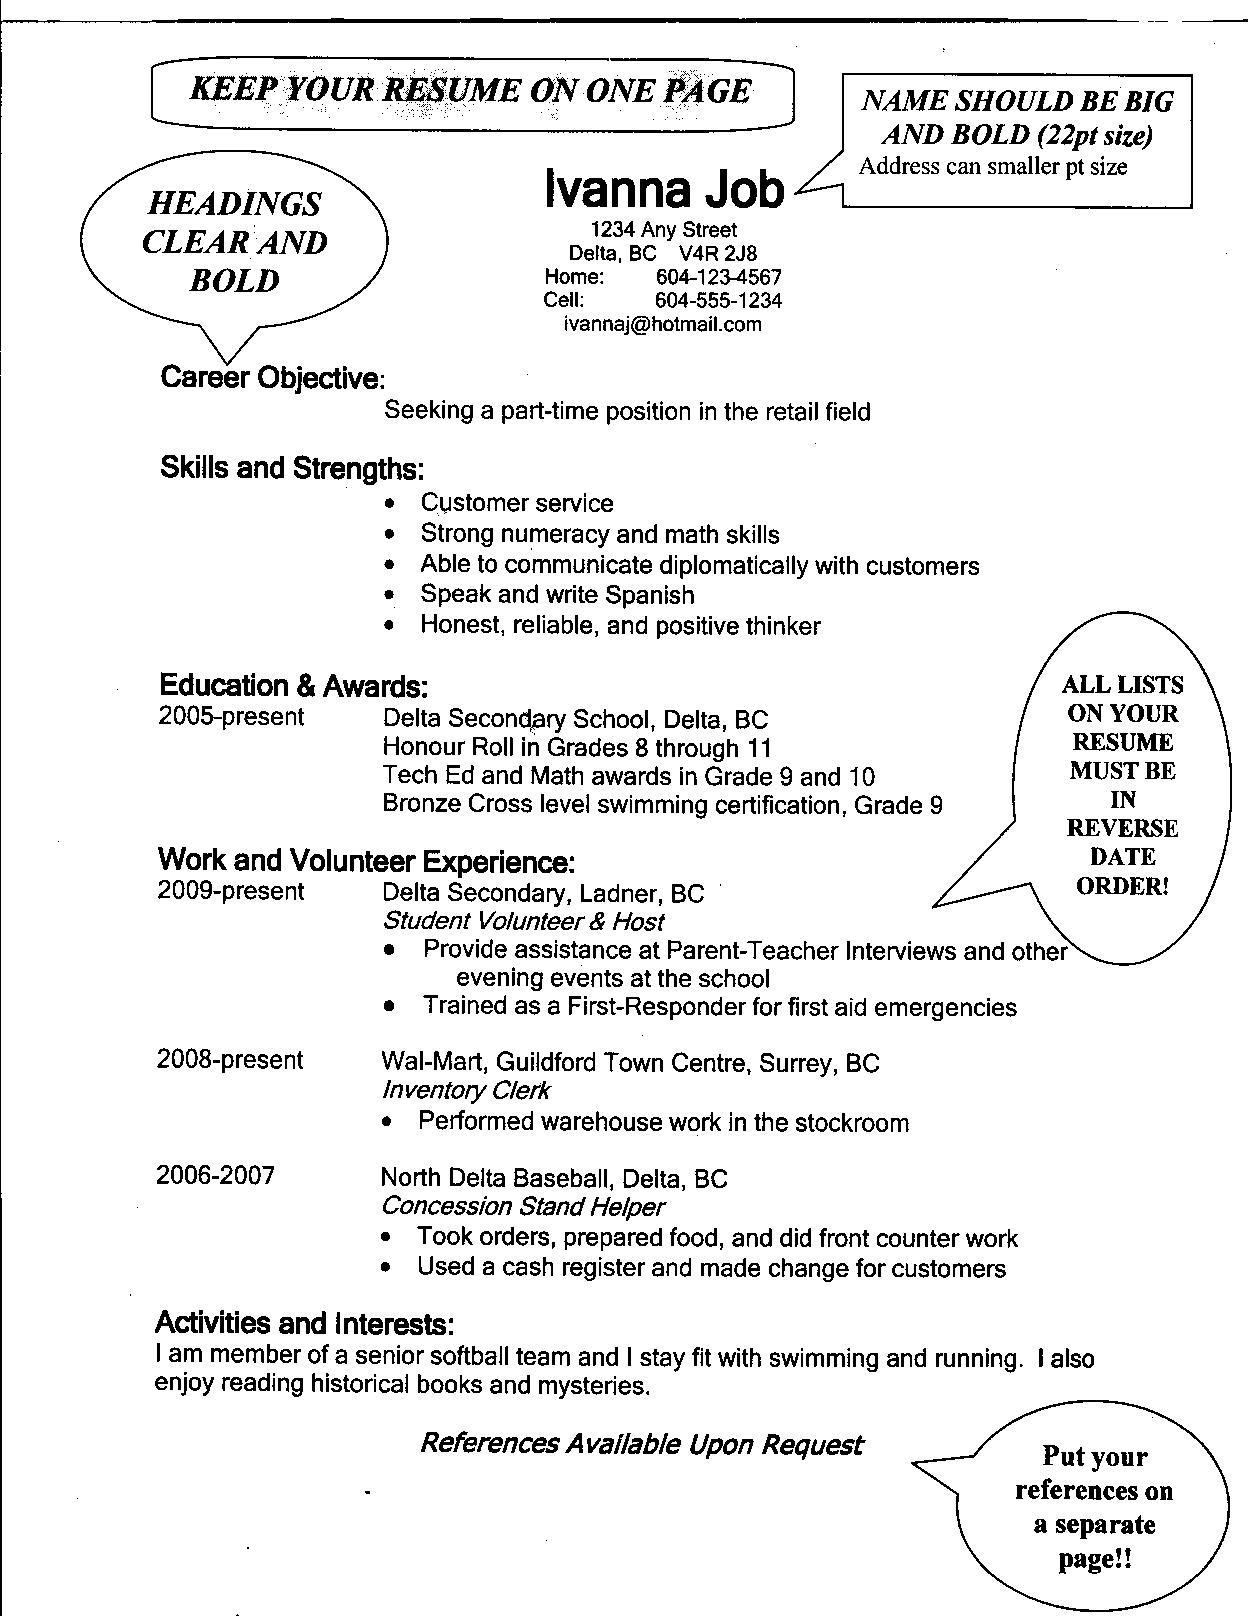 resume template for a college student college for acadf dd adf